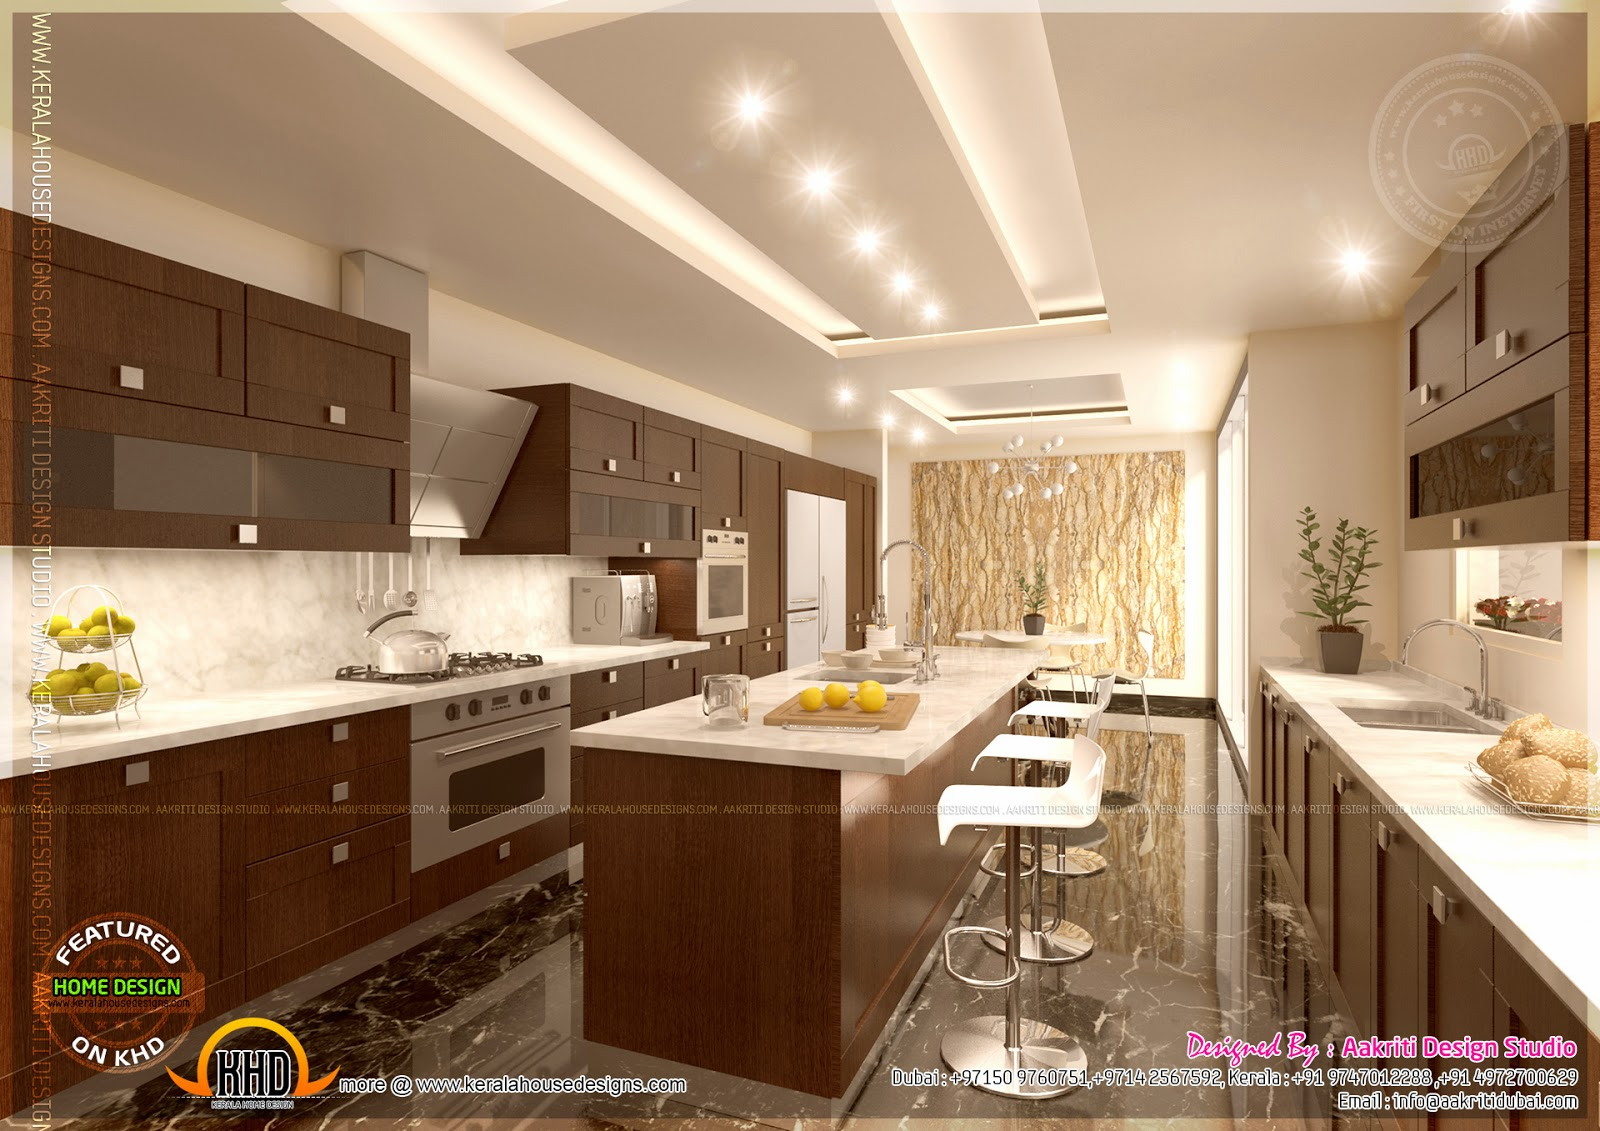 Kitchen designs by aakriti design studio kerala home for Style at home kitchen ideas